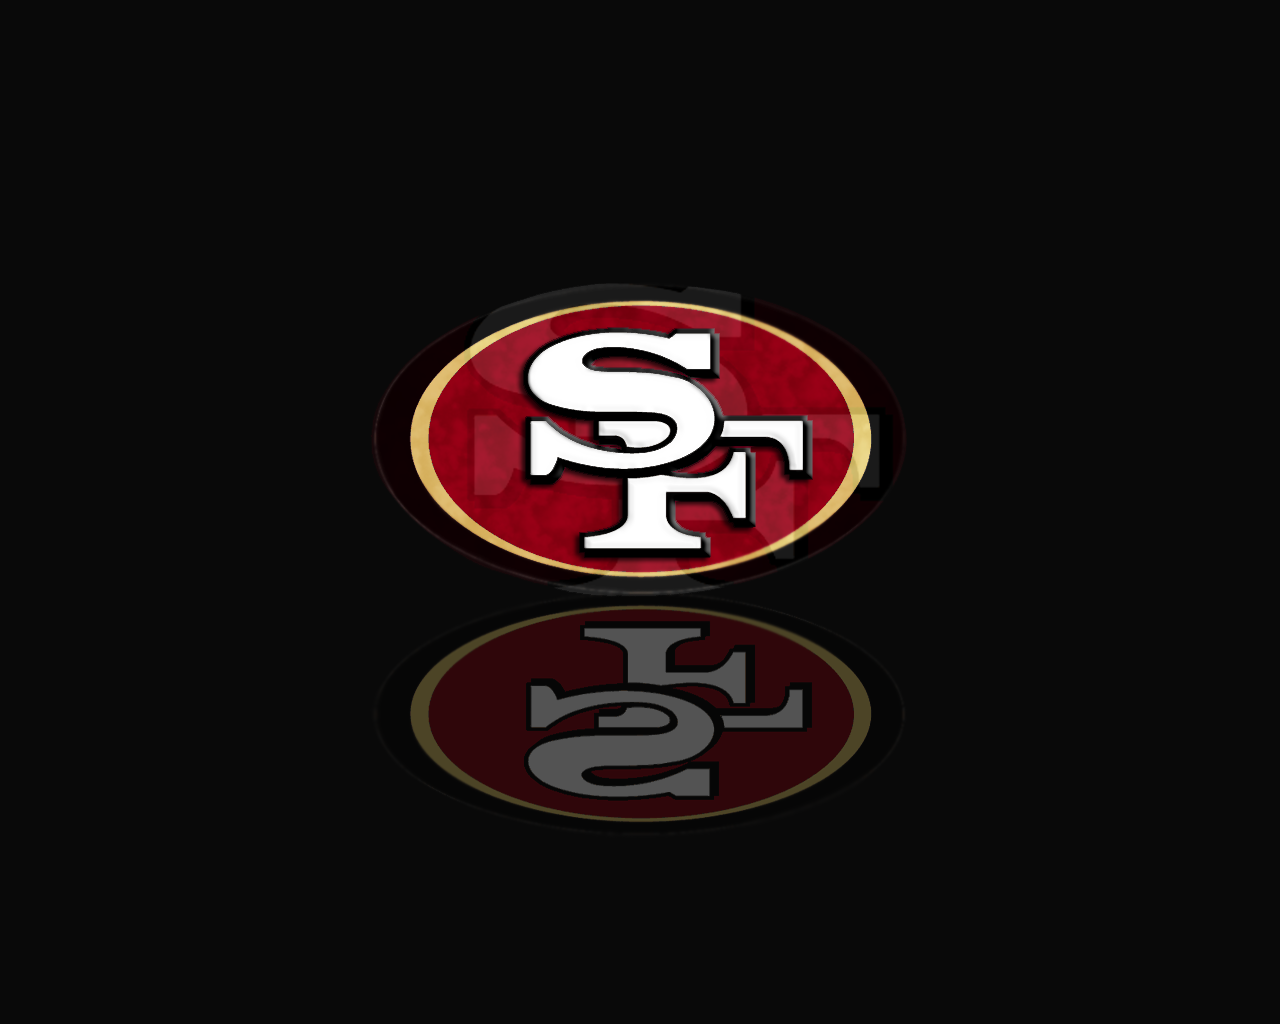 A really nice collections of logo an helmet wallpapers for the 49ers and the